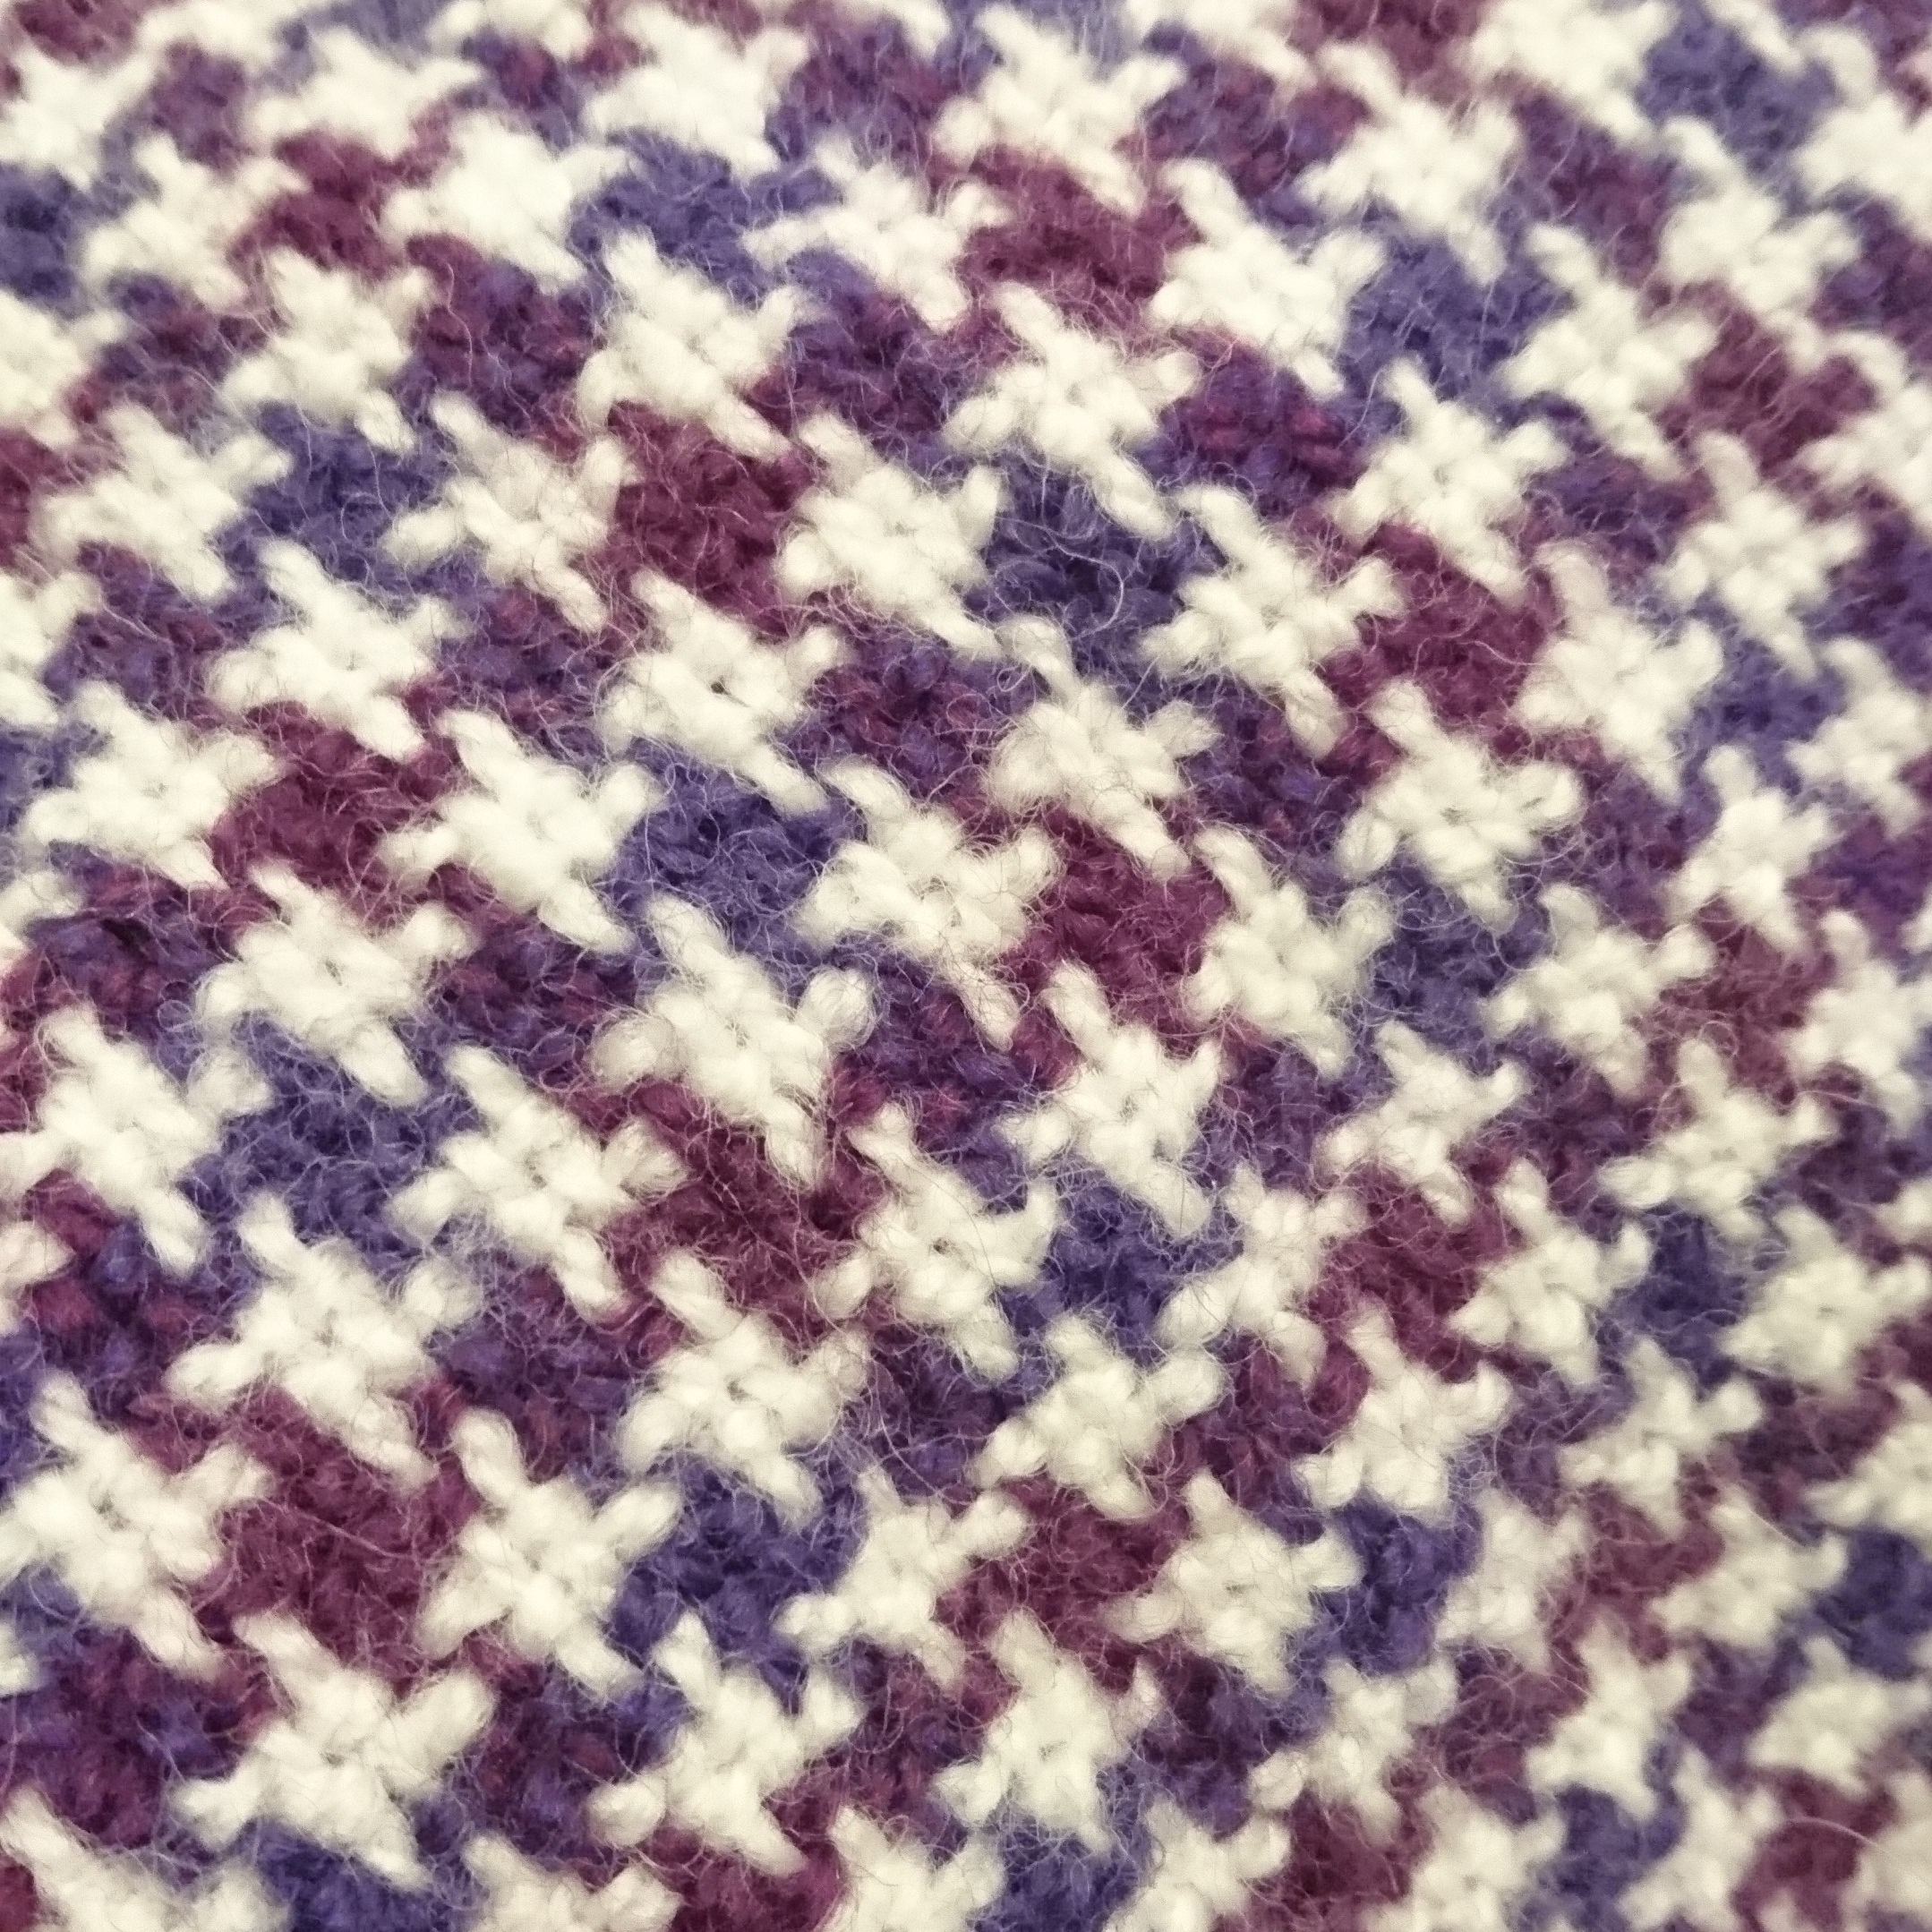 Weaving featuring small checked / criss-crosses of white, plum and purple in a houndstooth pattern.